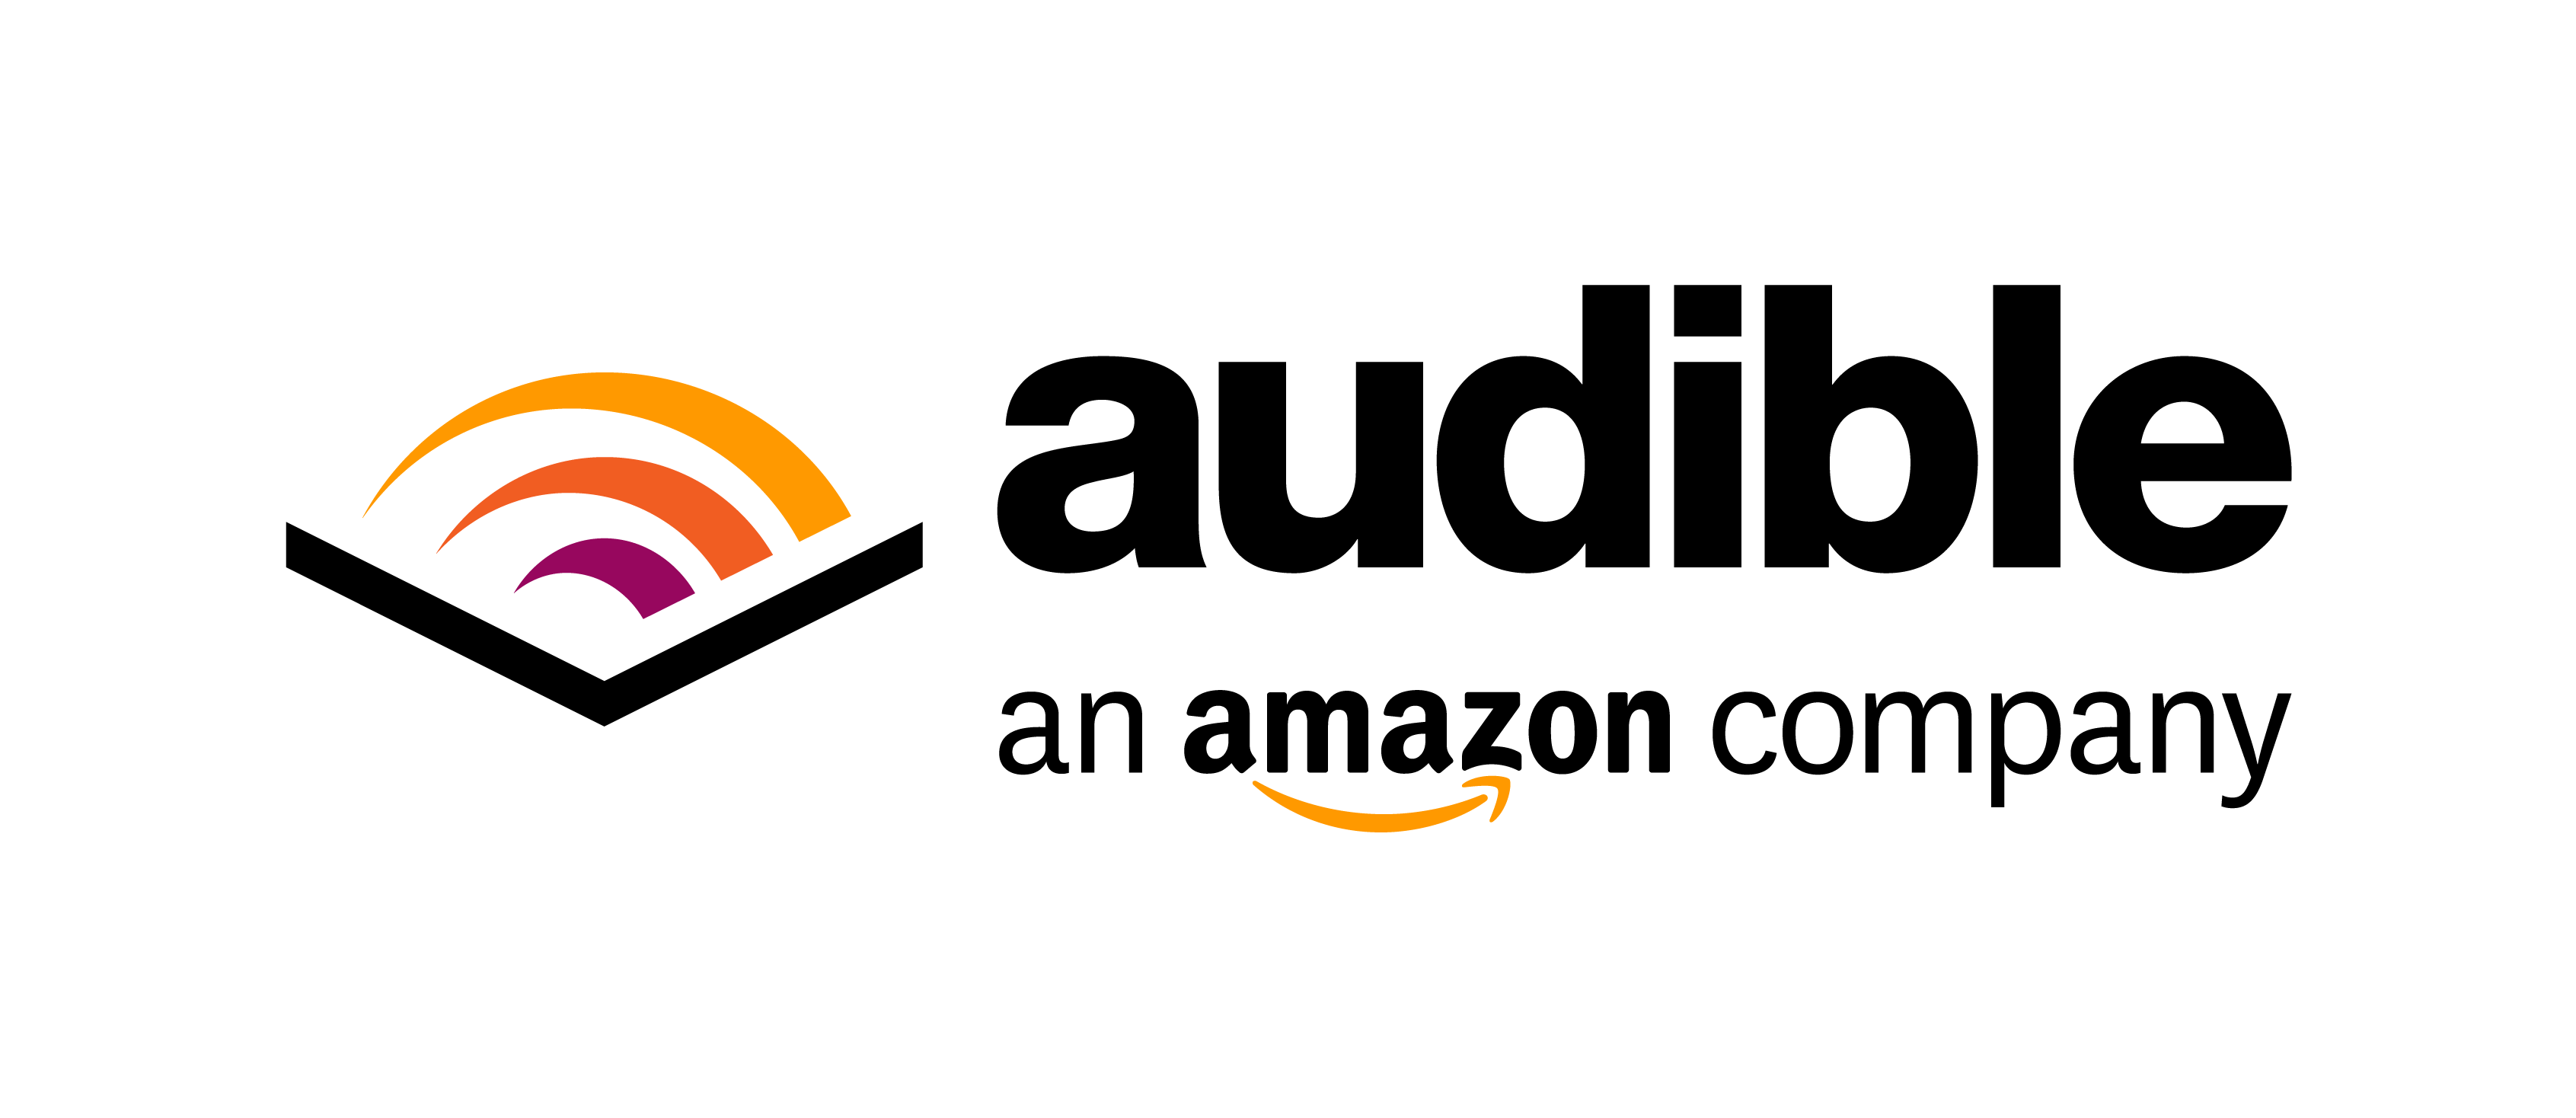 audible11